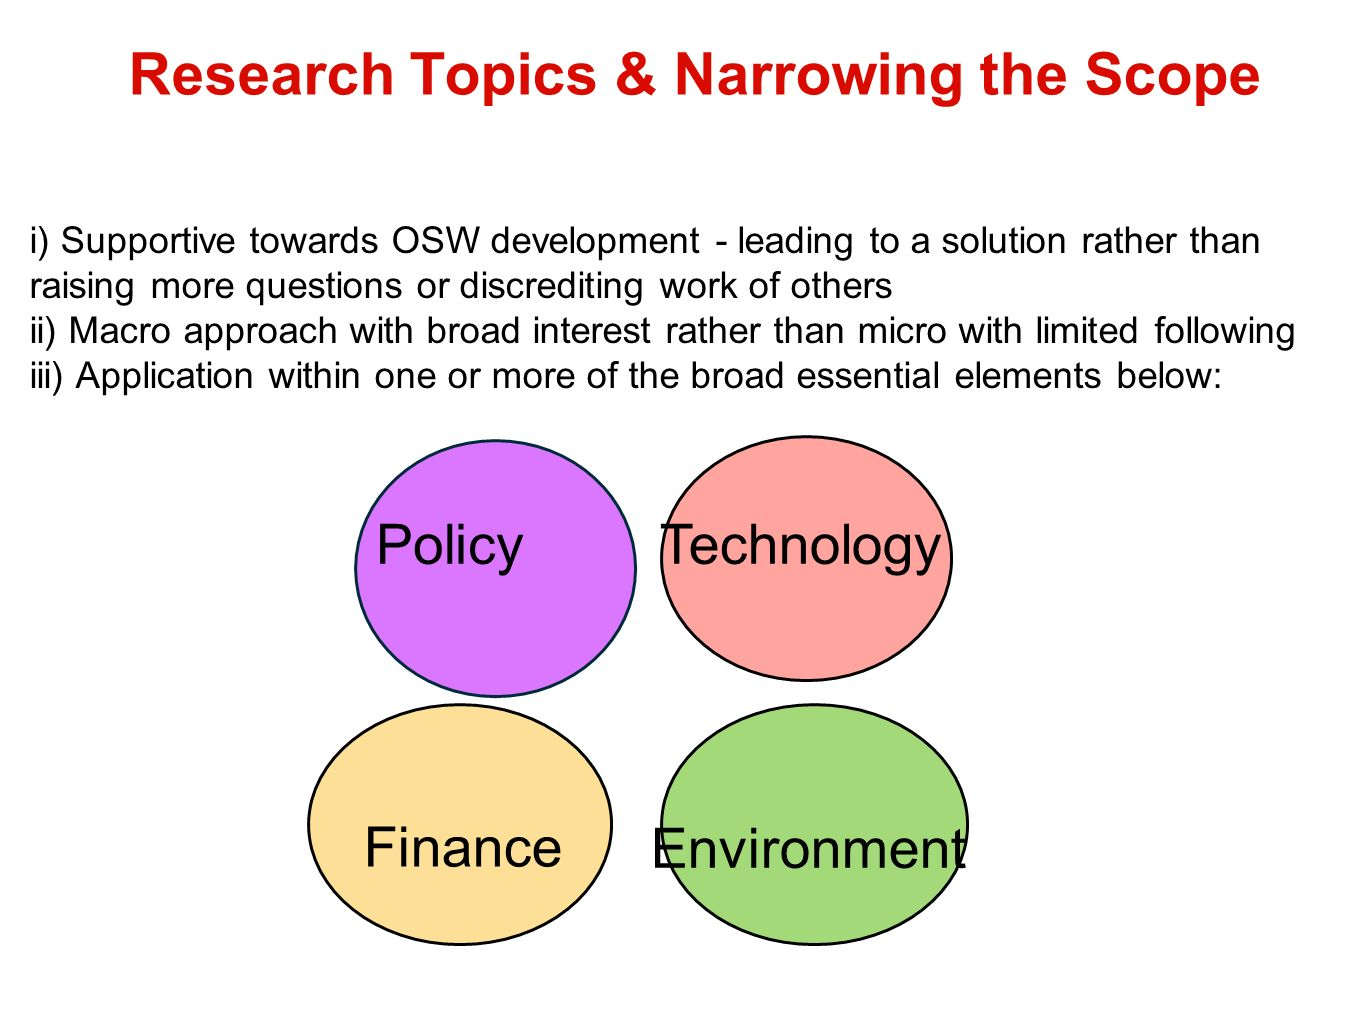 Research Topics & Narrowing the Scope Policy Environment Finance Technology i) Supportive towards OSW development - leading to a solution rather than raising more questions or discrediting work of others ii) Macro approach with broad interest rather than micro with limited following iii) Application within one or more of the broad essential elements below: